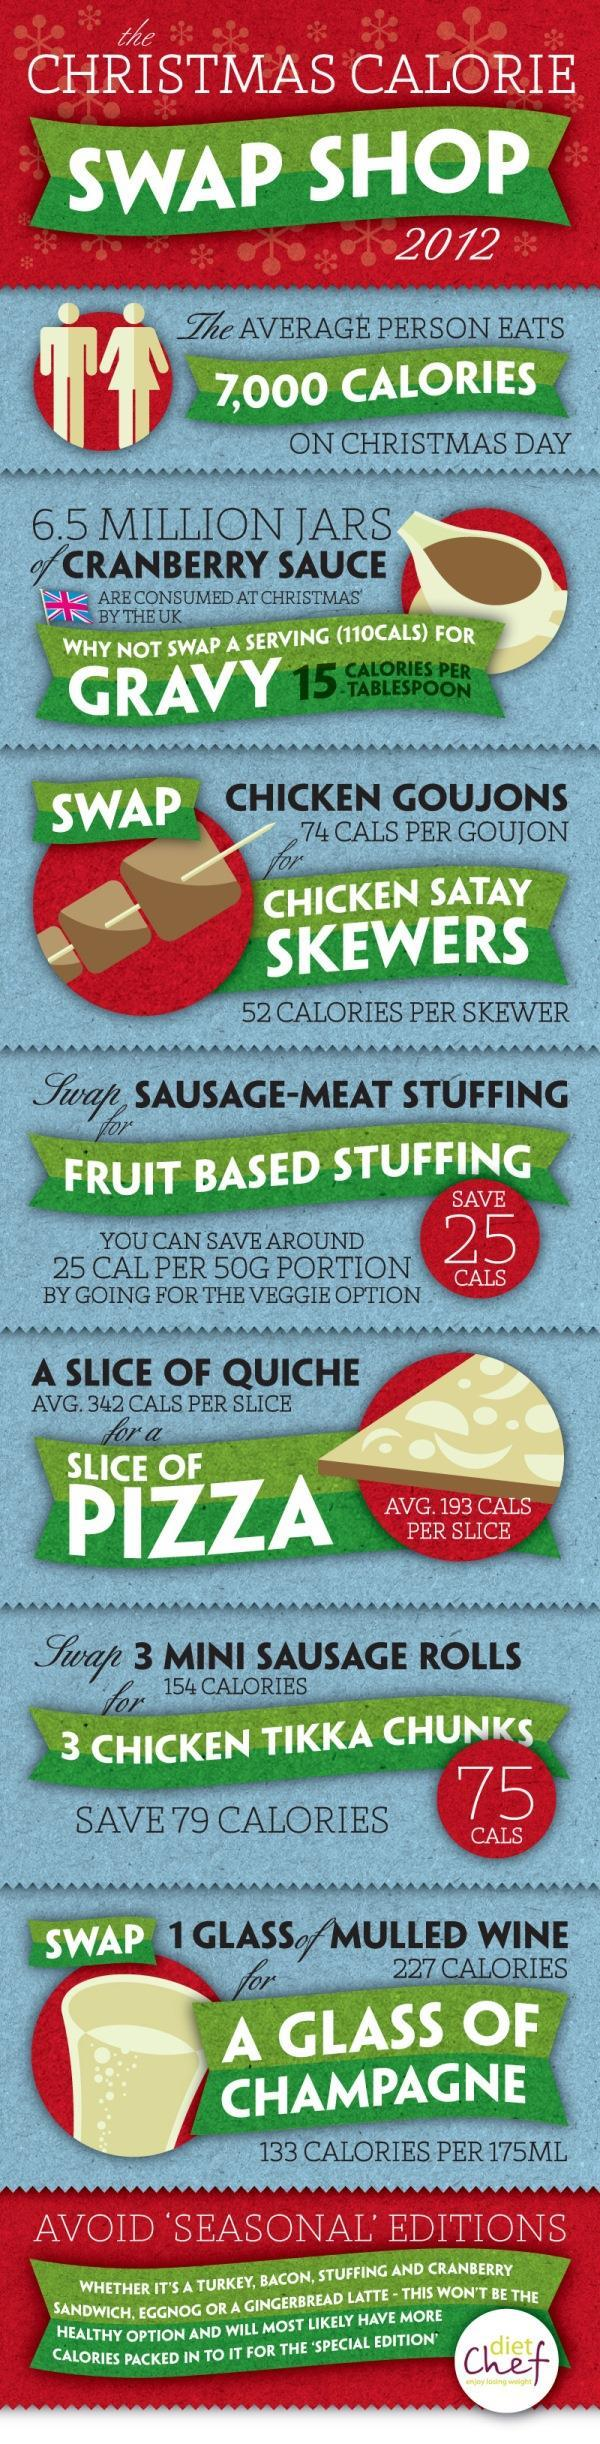 Christmas Calories Infographic